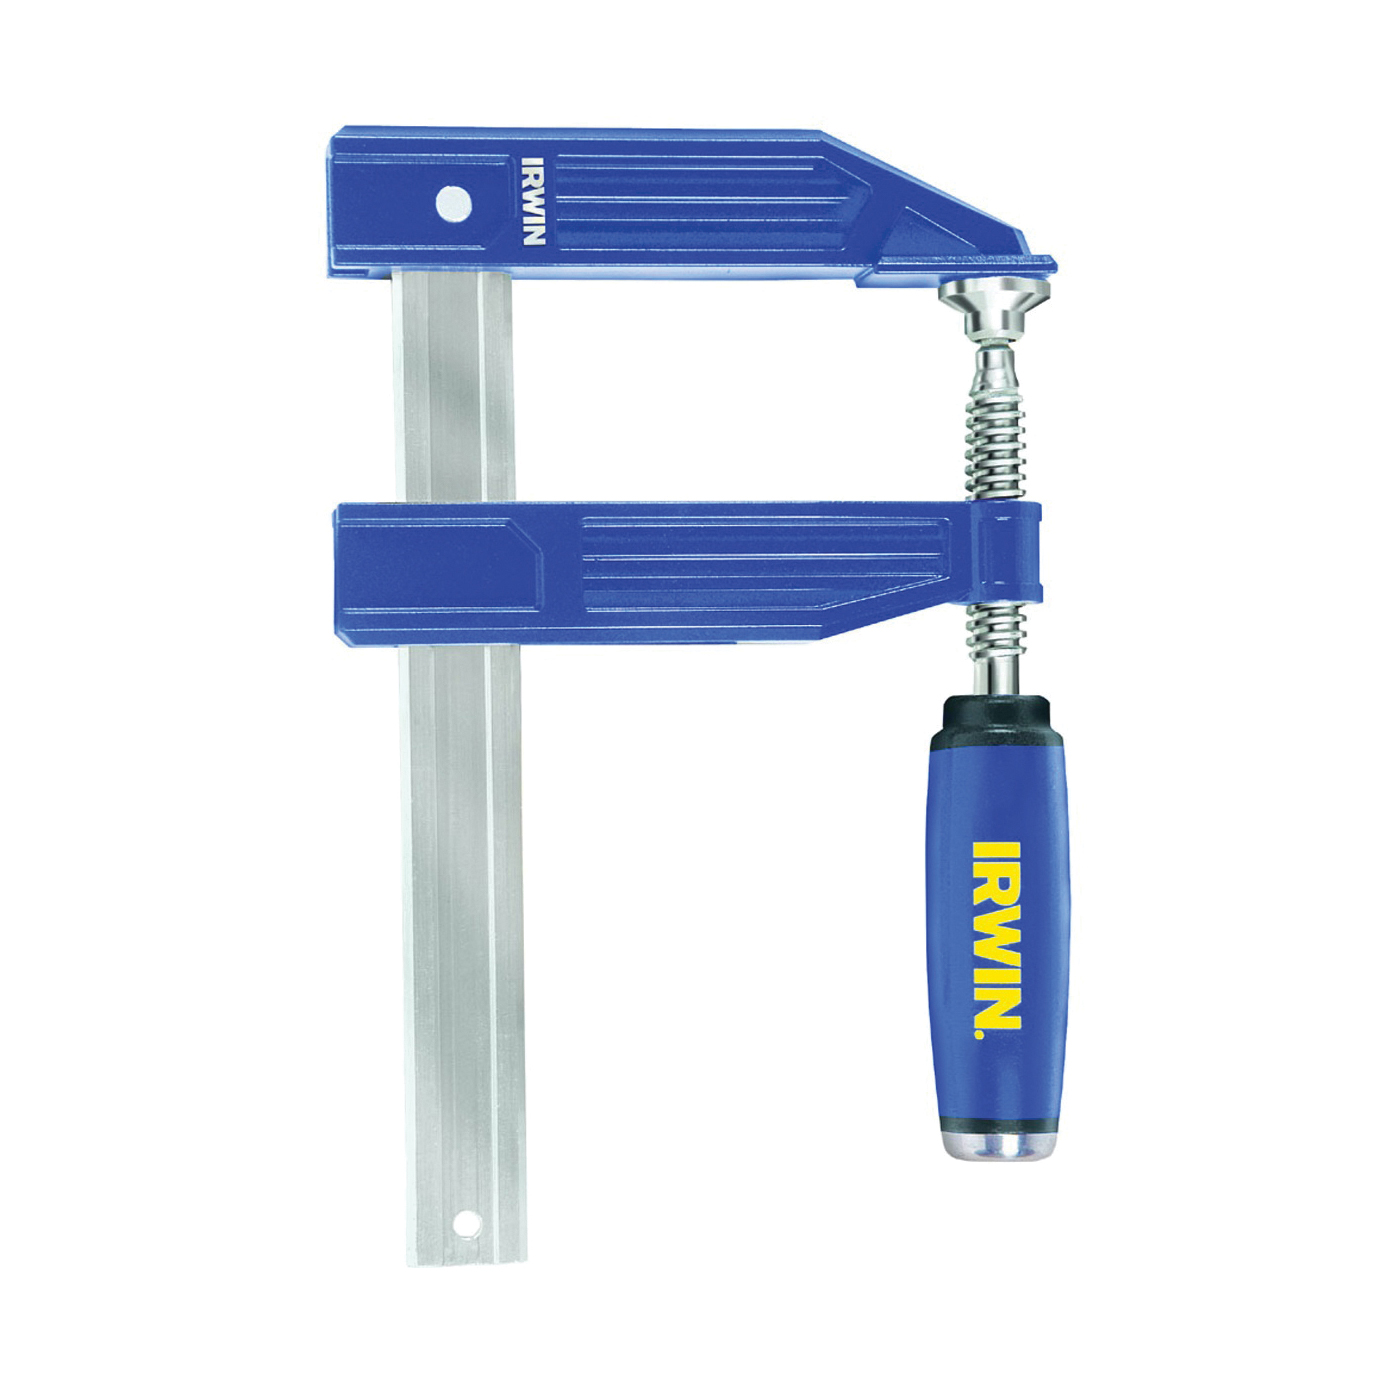 Picture of IRWIN QUICK-GRIP 223224 Heavy-Duty Bar Clamp, 24 in Max Opening Size, 4-7/8 in D Throat